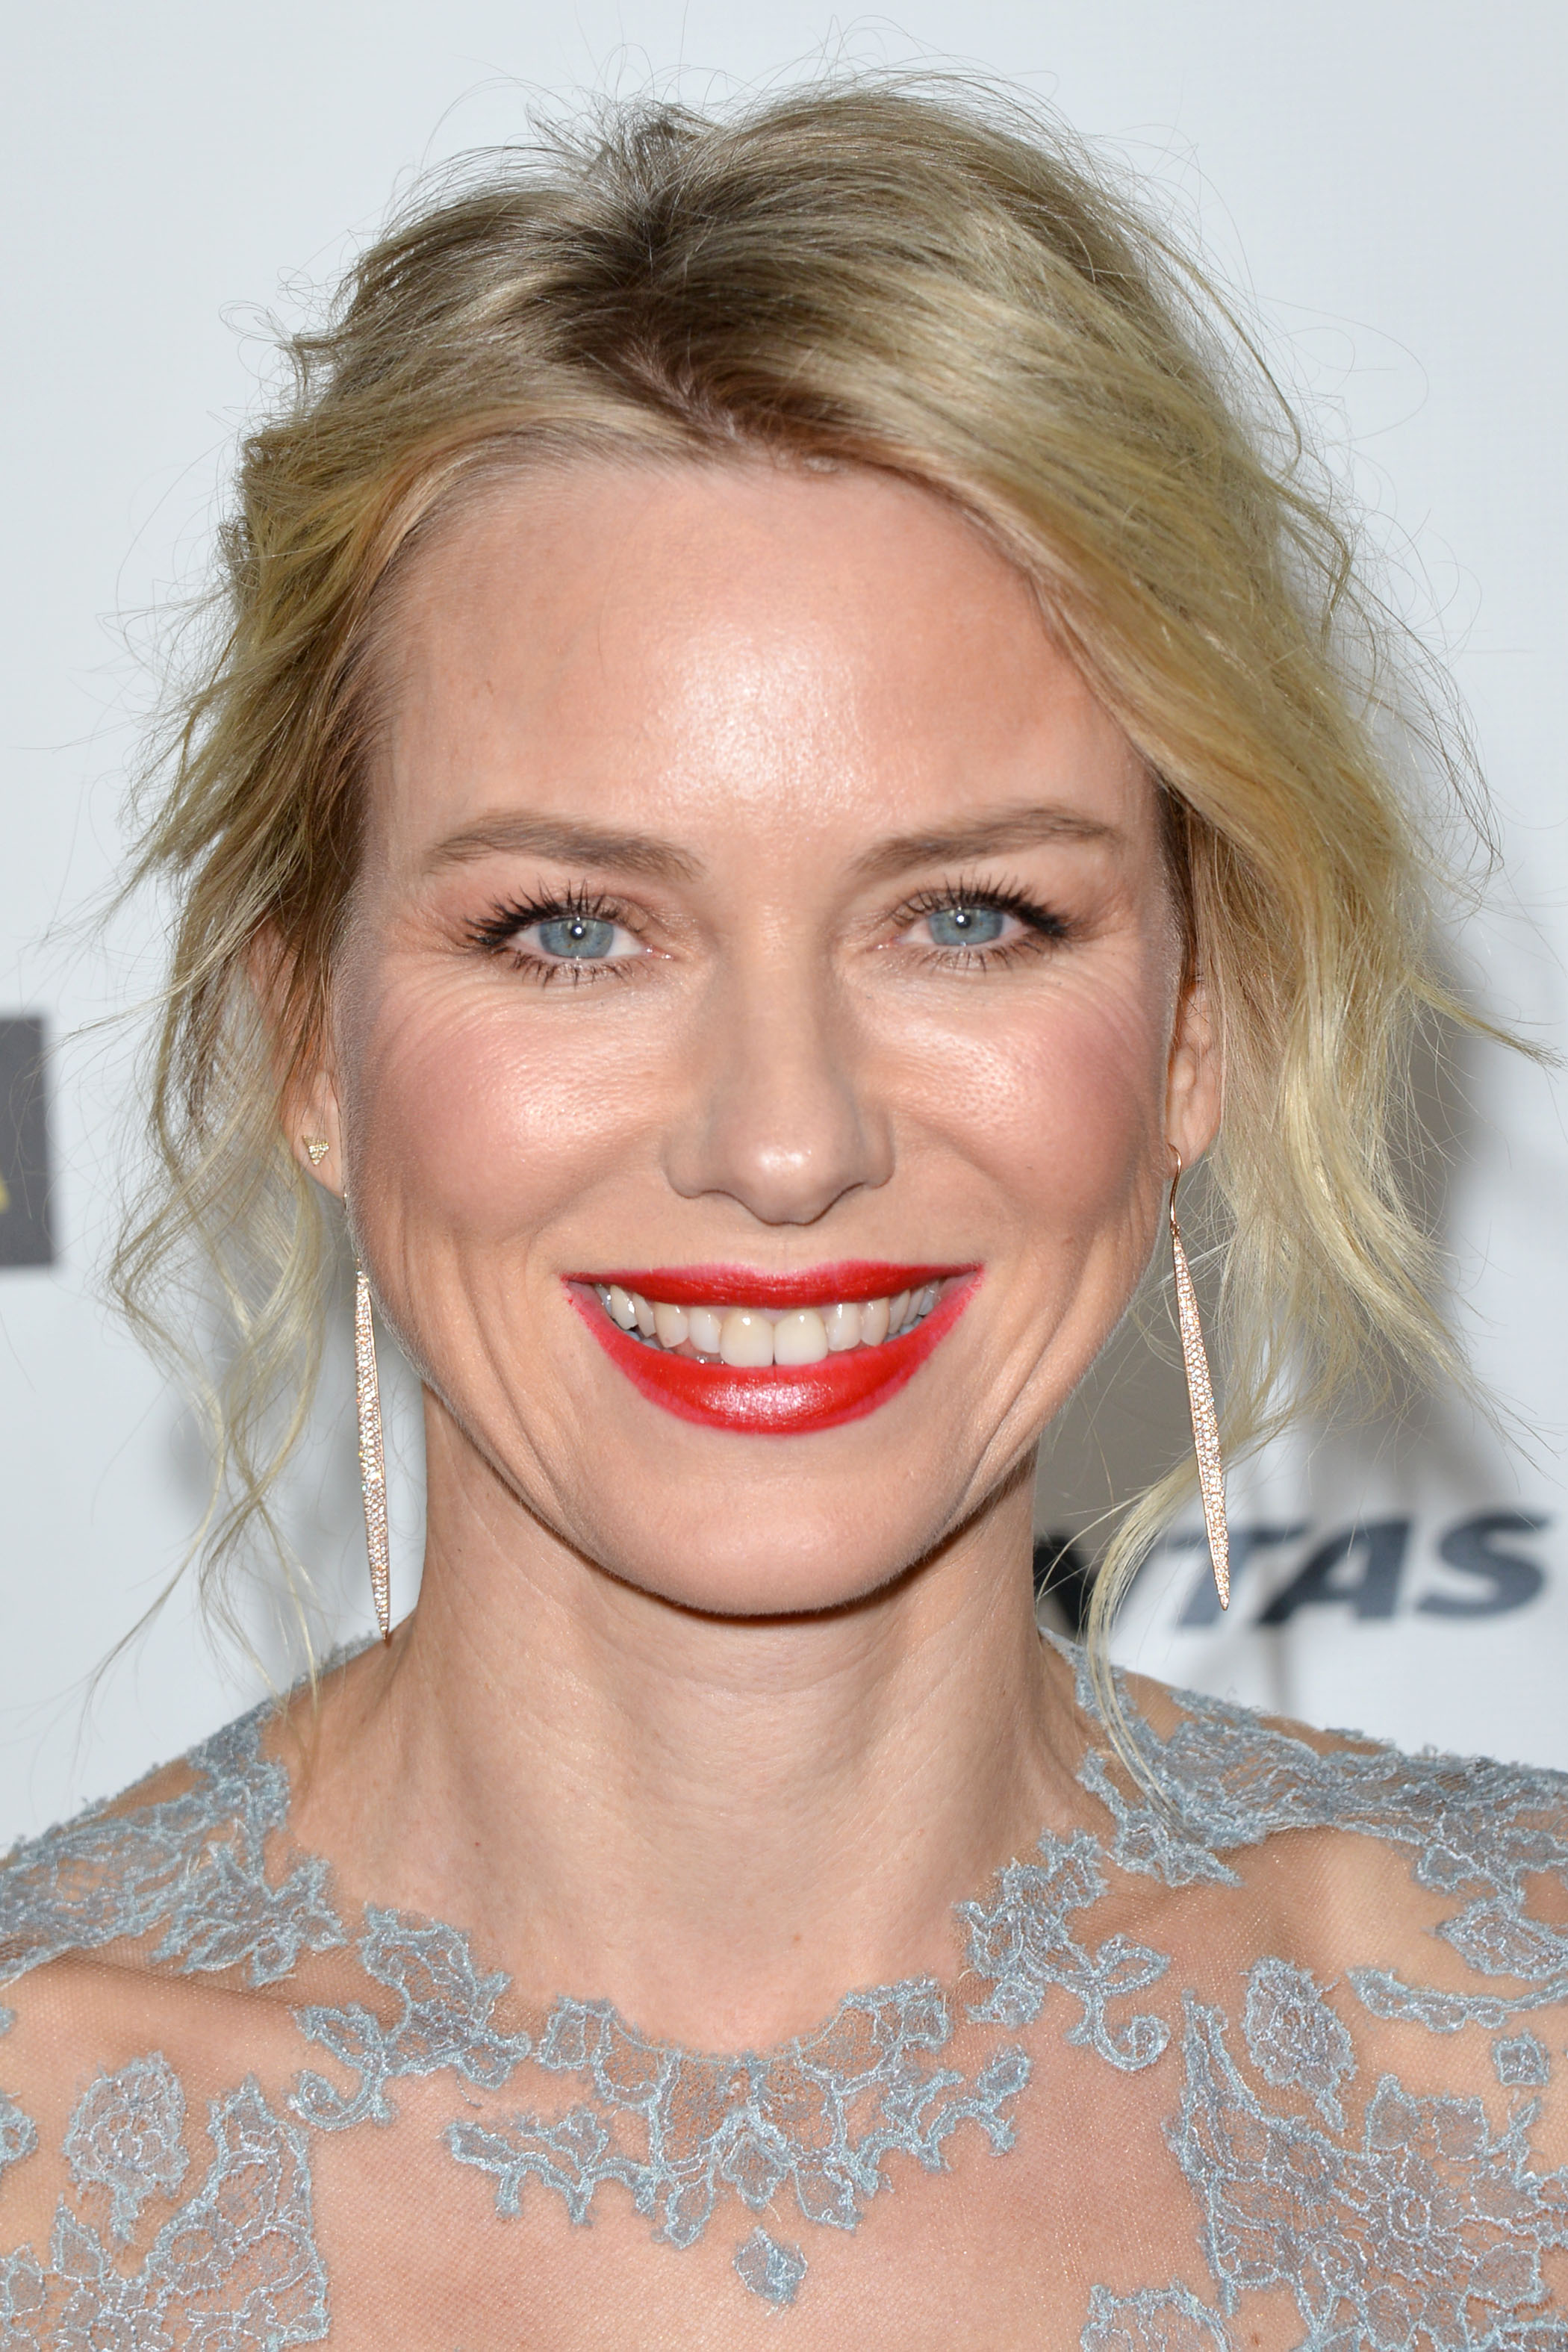 on October 20 2015 By Stephen Comments Off on Naomi Watts Wallpapers 2100x3150